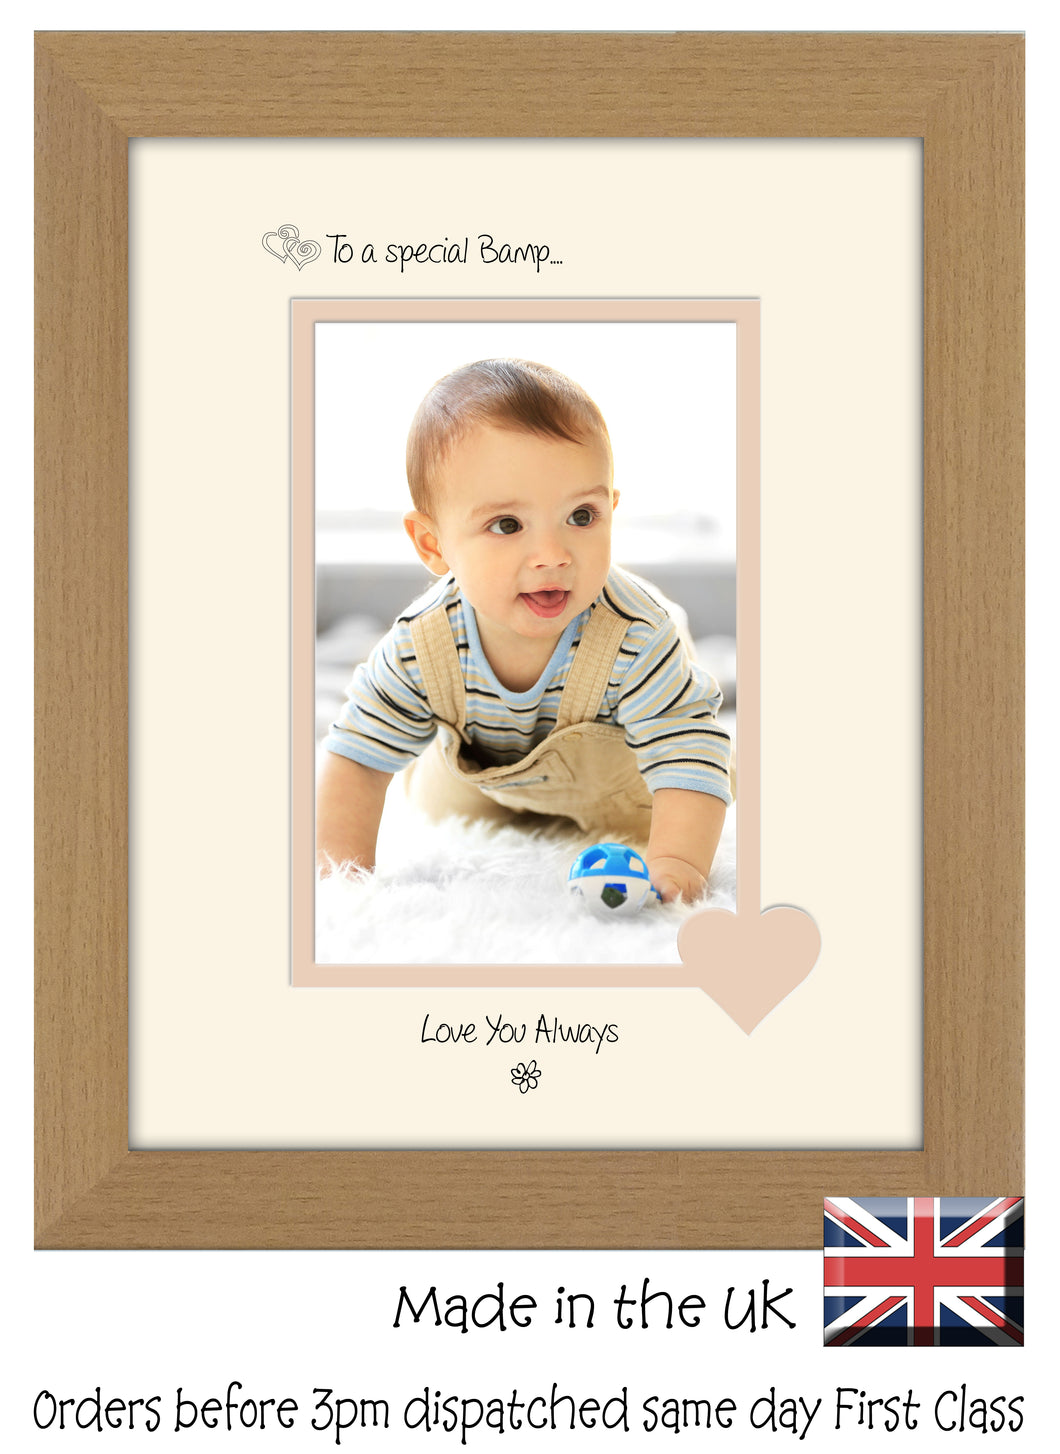 Bamp Photo Frame - To a Special Bamp ... Love you Always Portrait photo frame 6